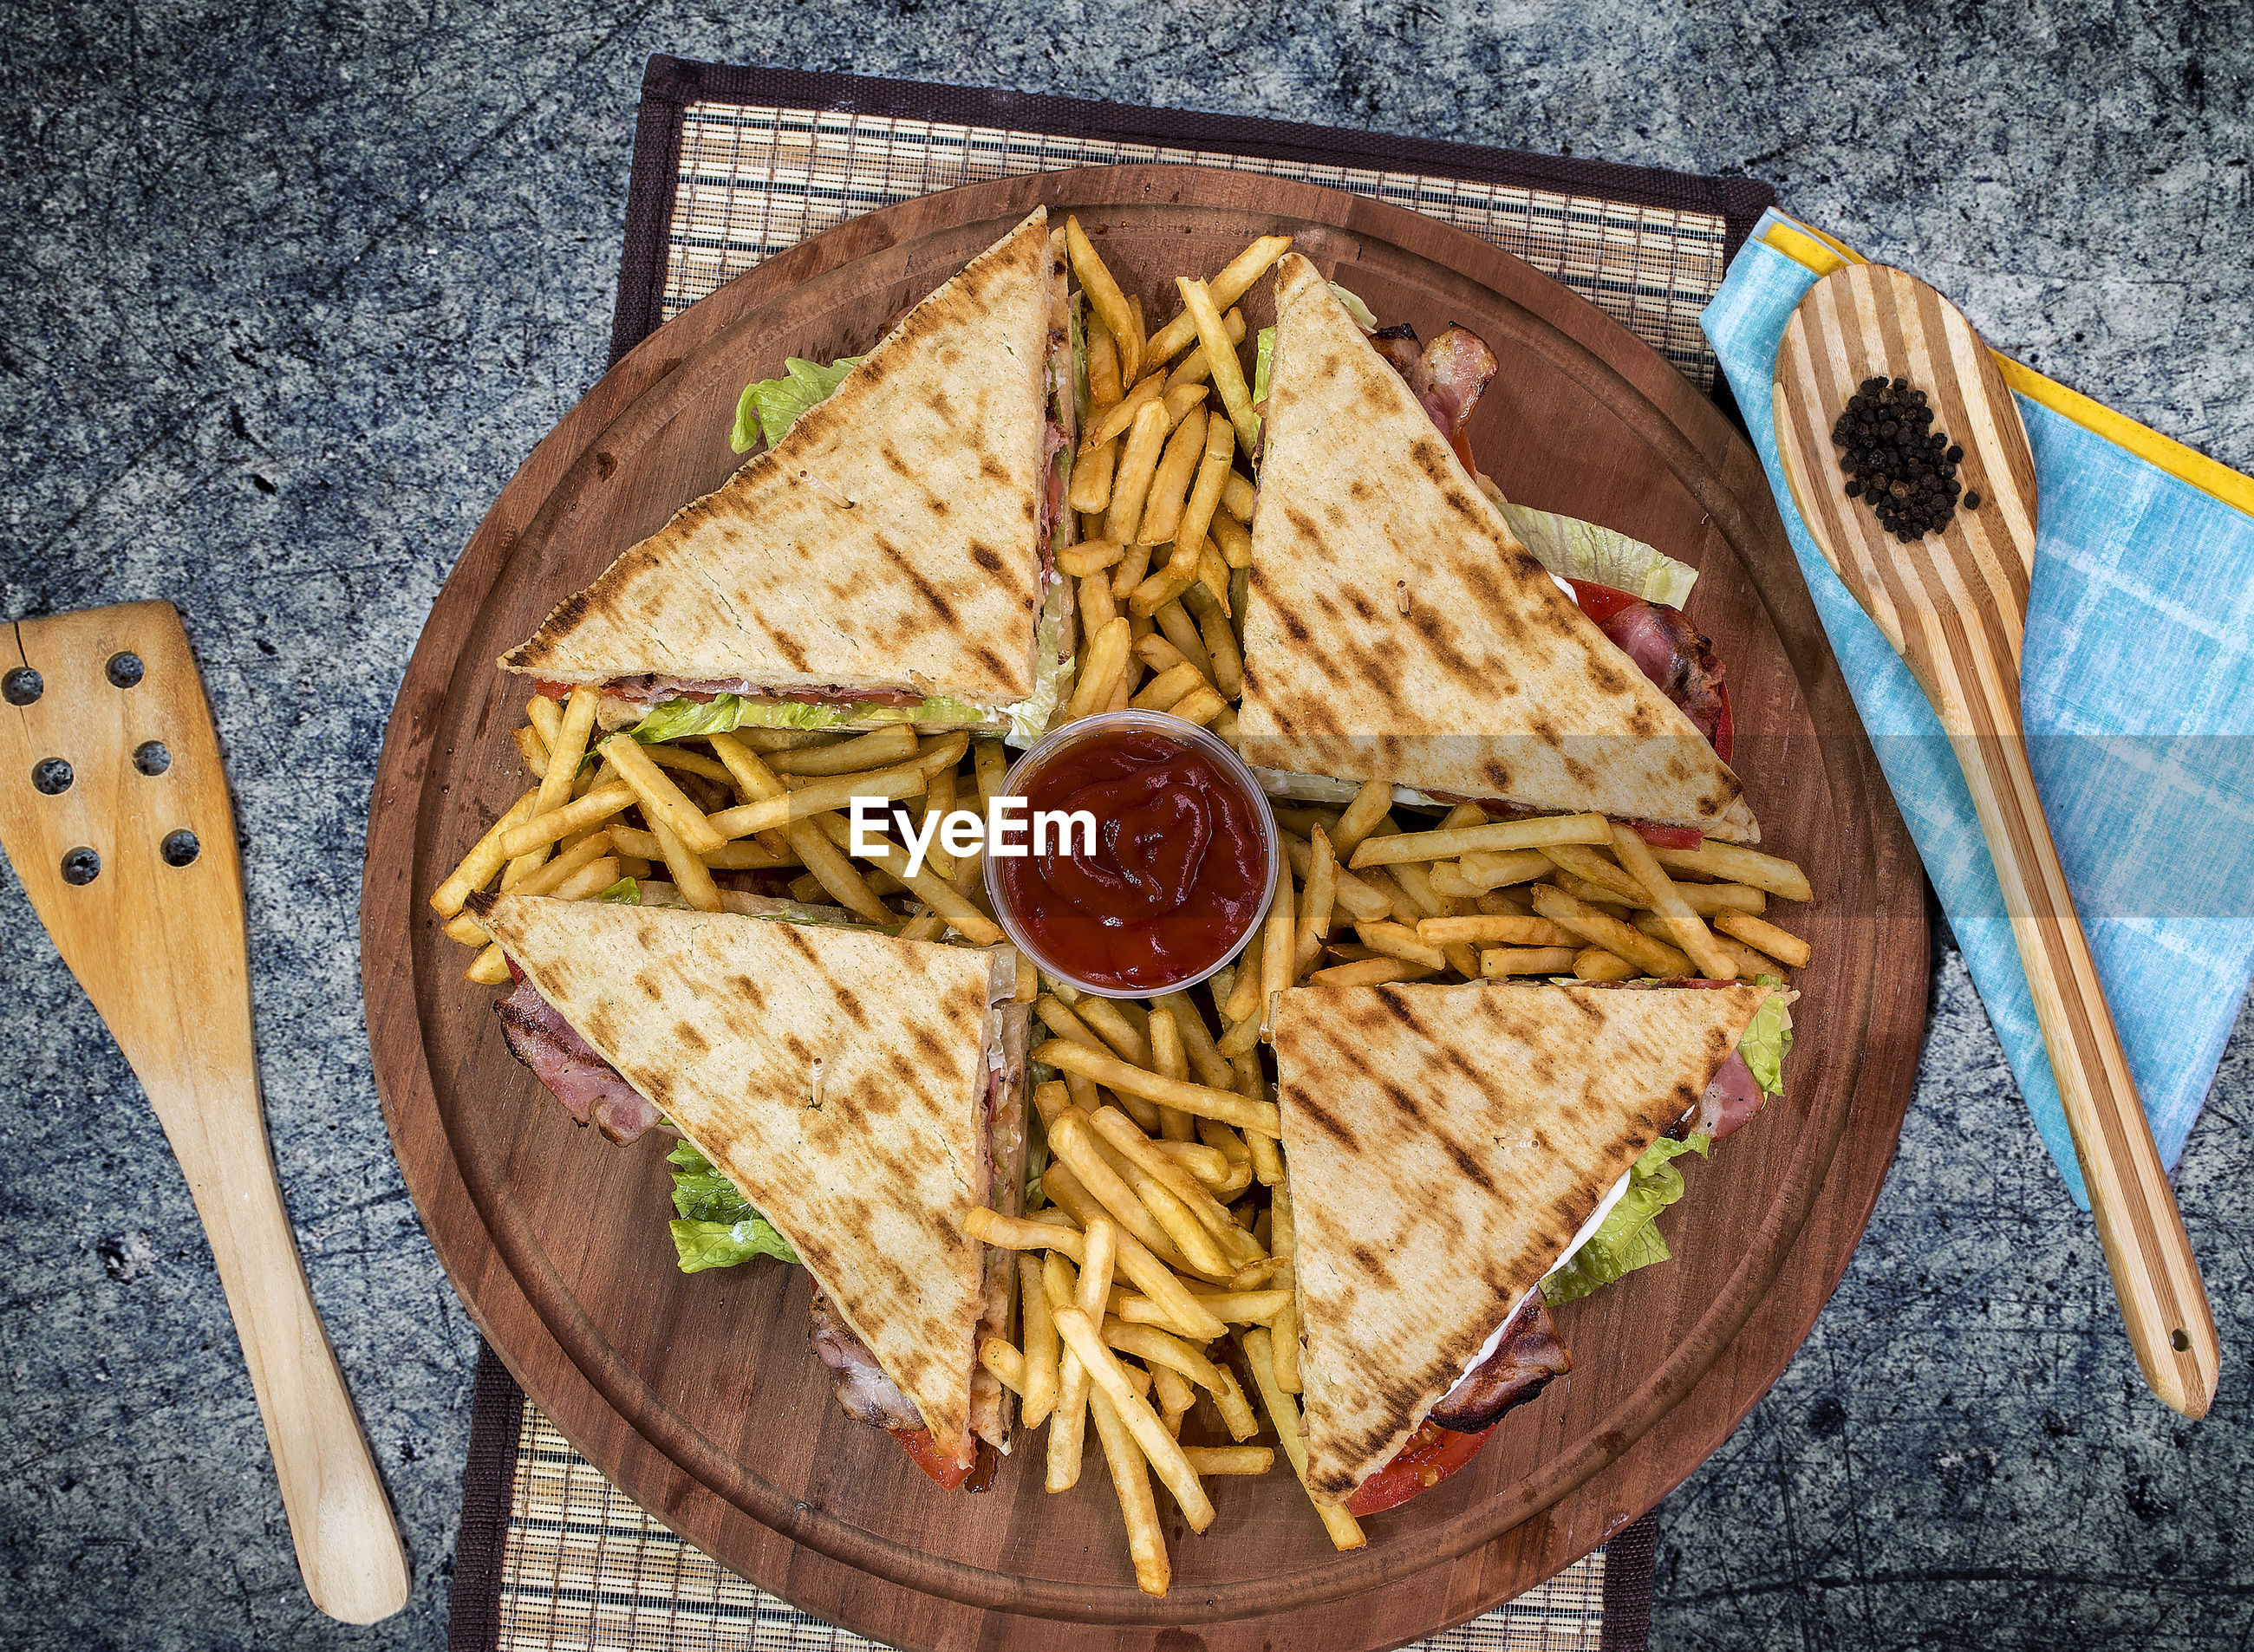 High angle view of sandwiches with french fries on table